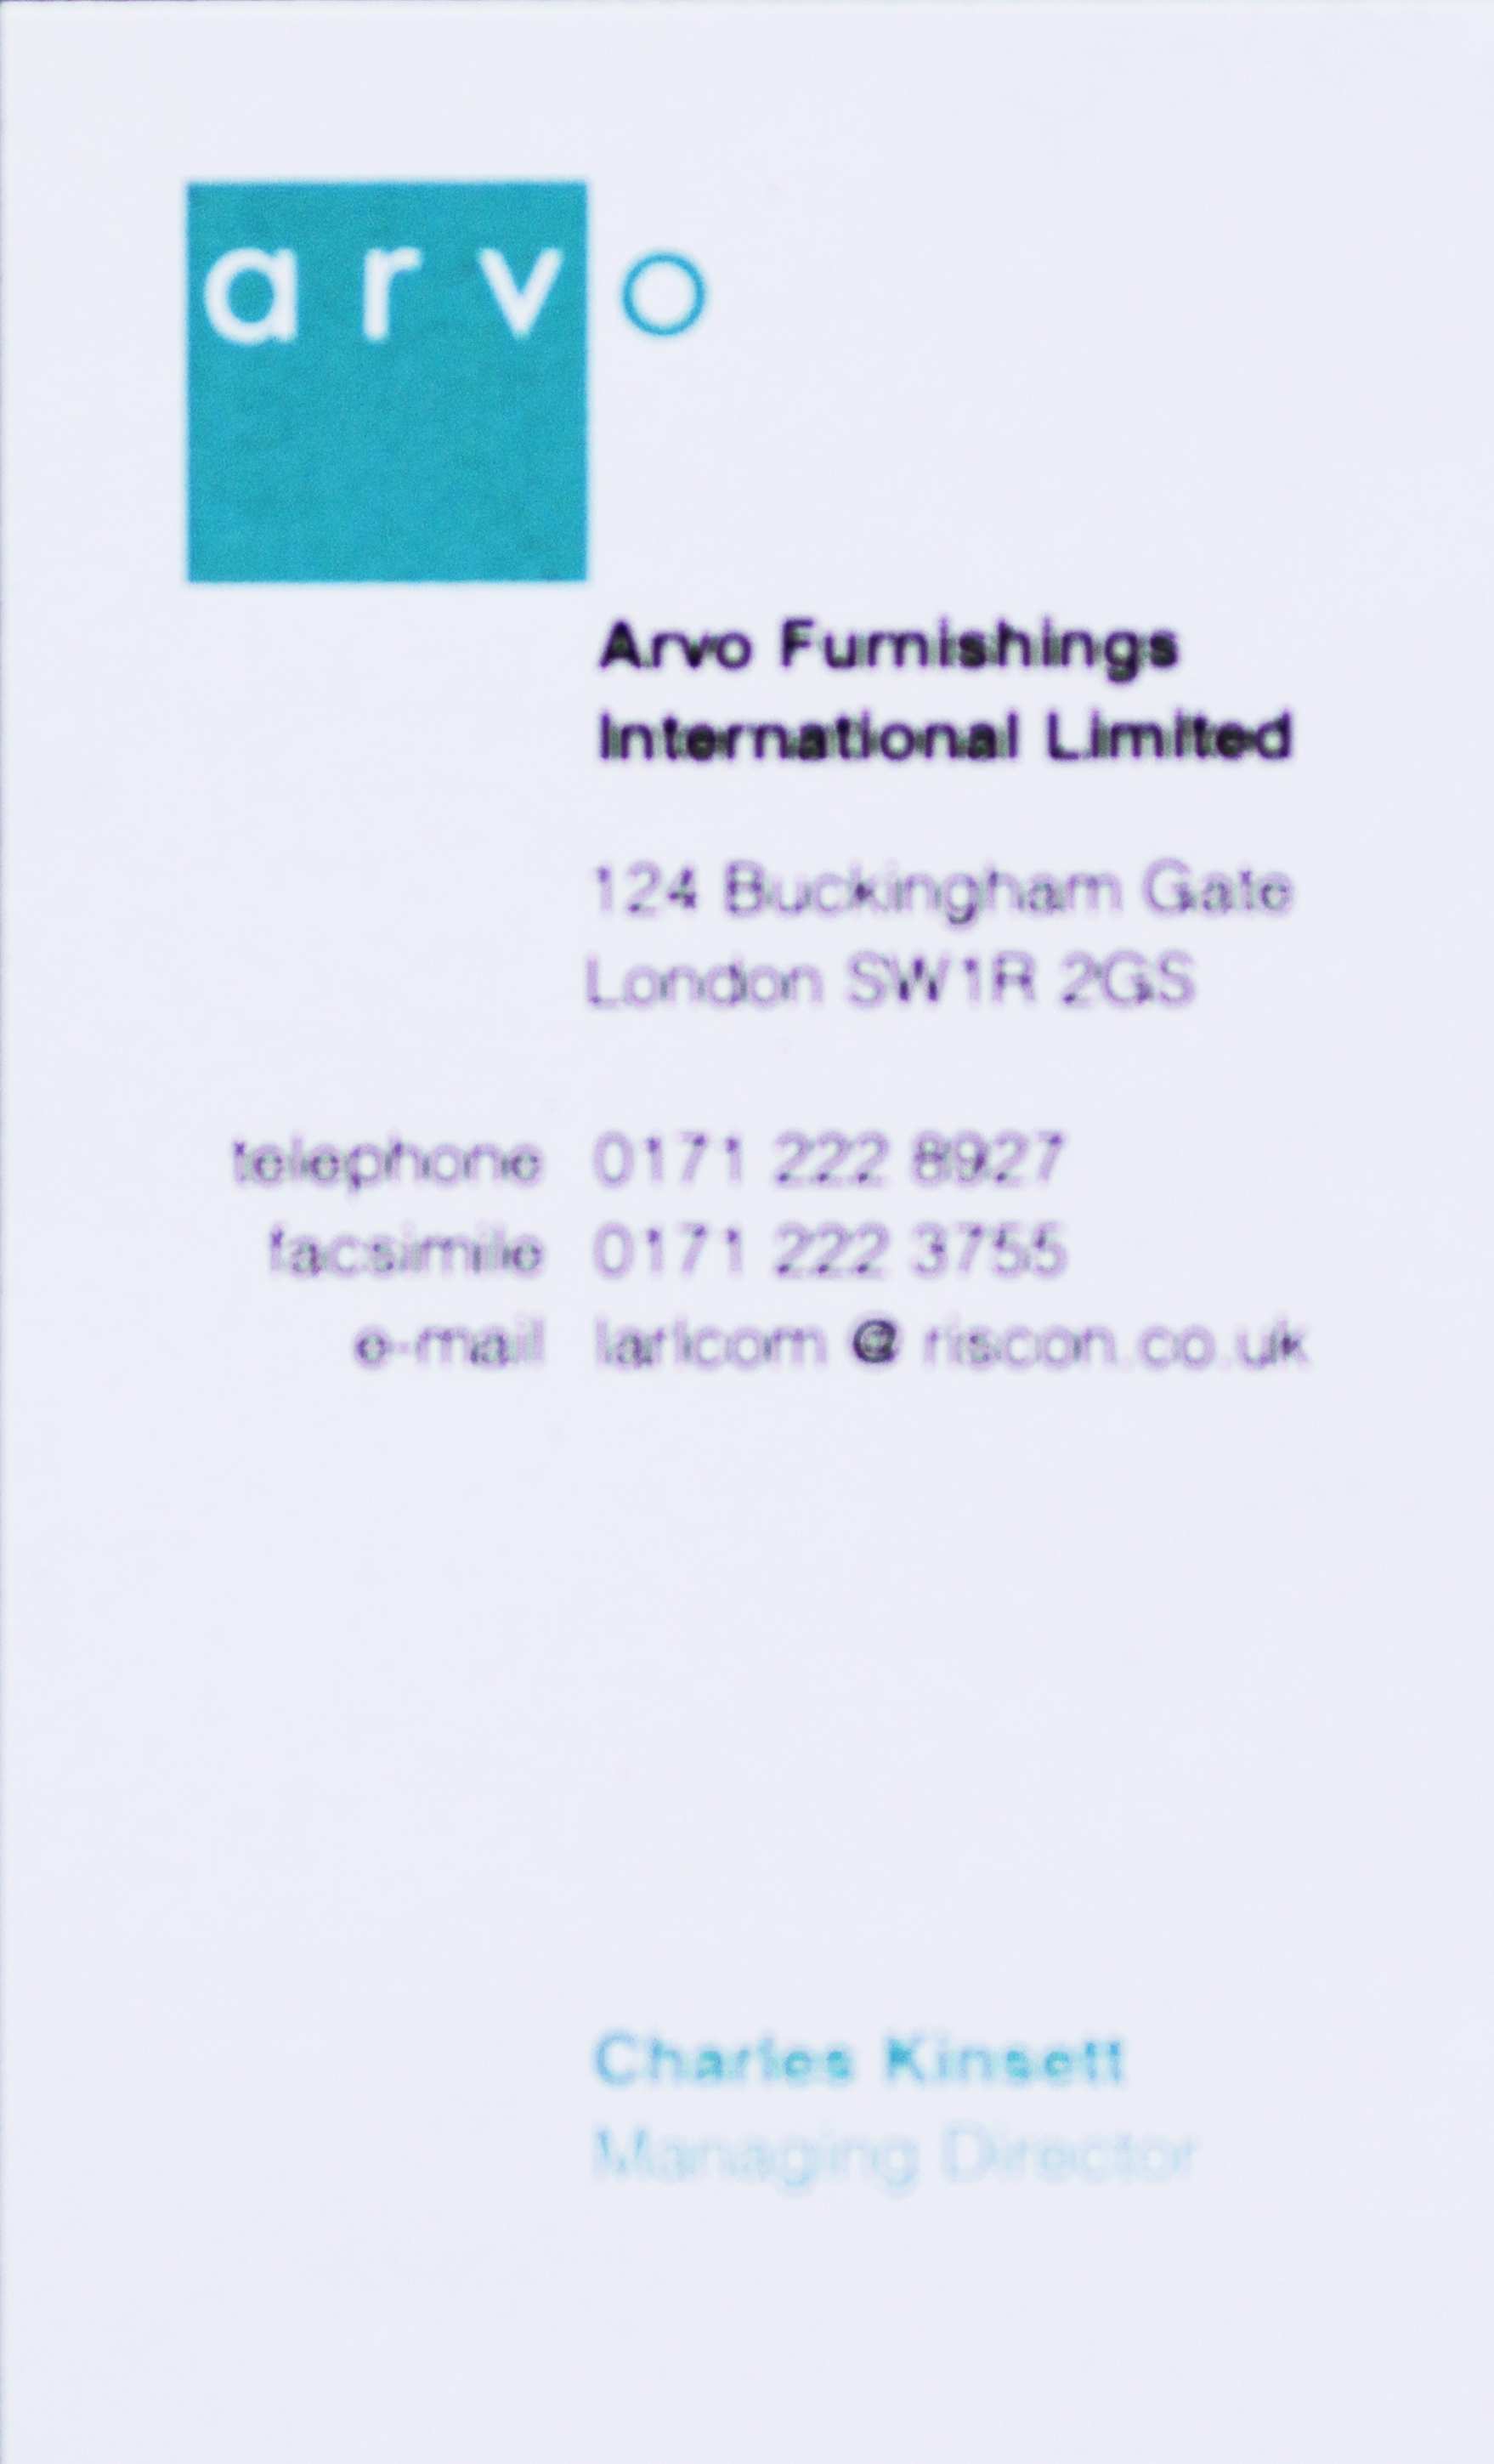 Arvo Furnishings Biz card